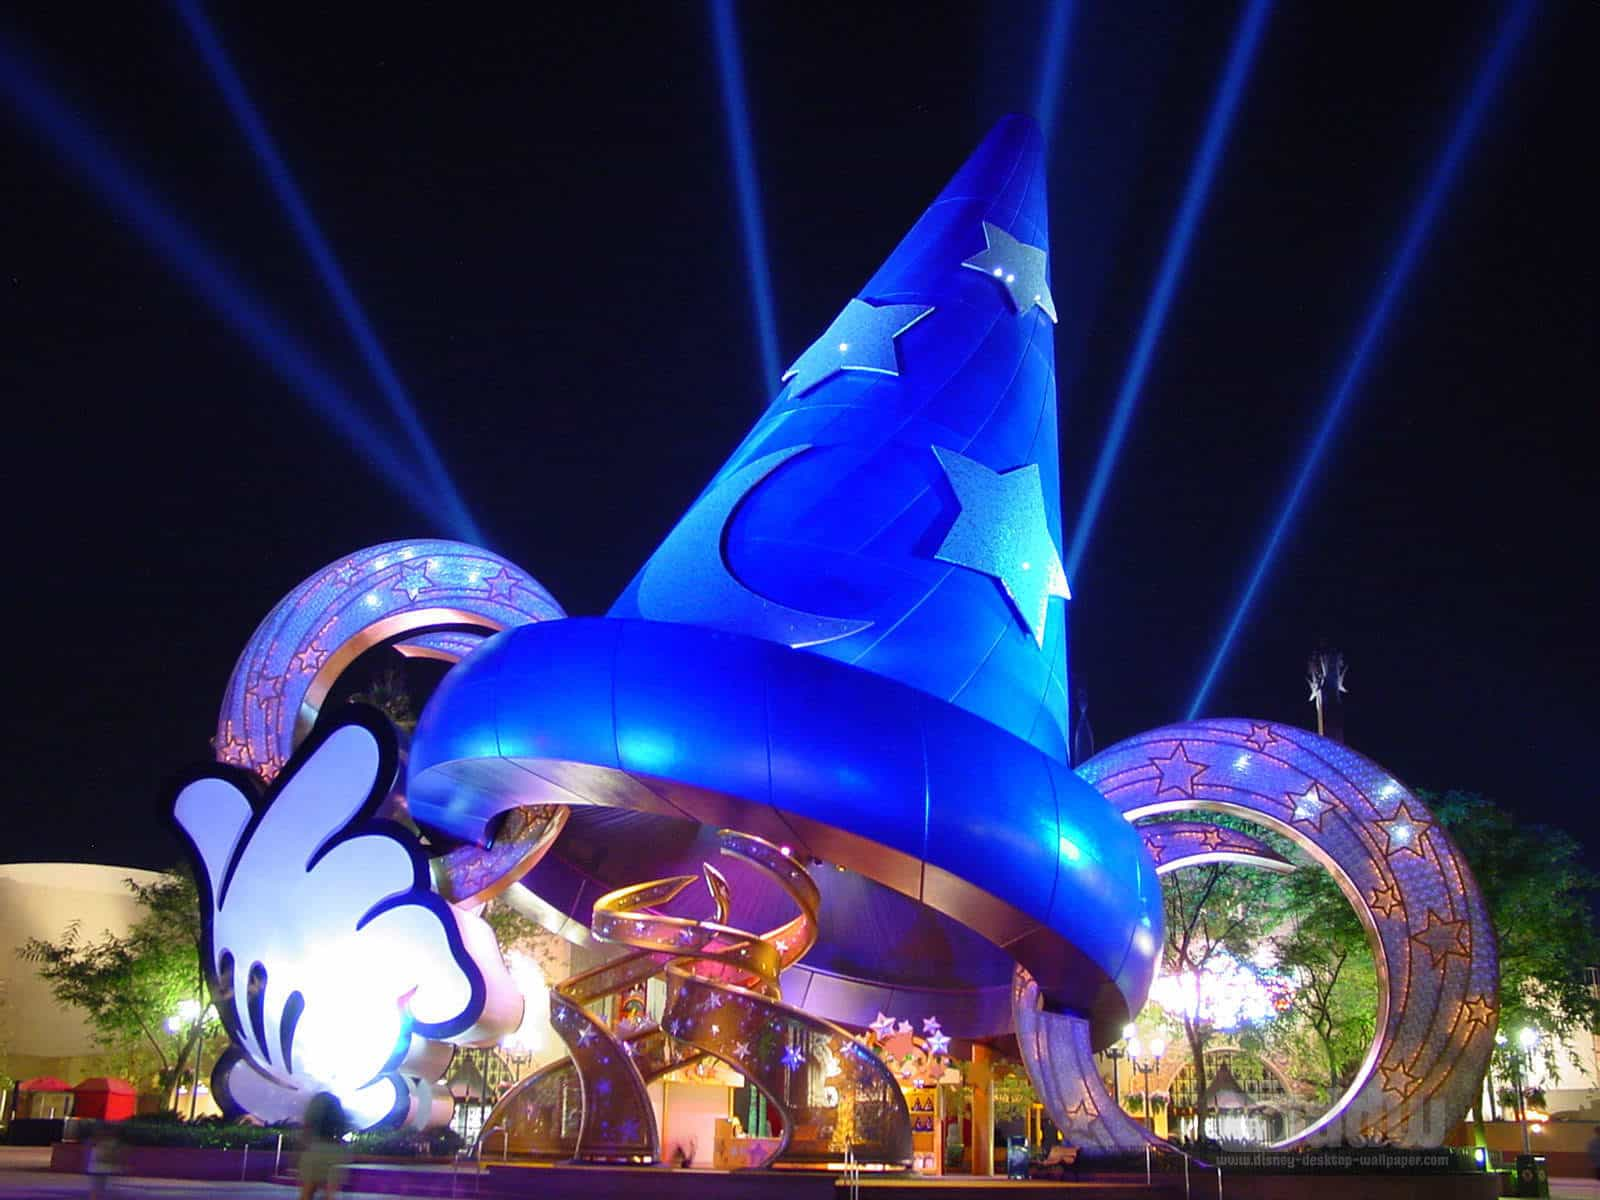 Disney Has Decided To Remove The Larger Than Life Mickeys Sorcerer